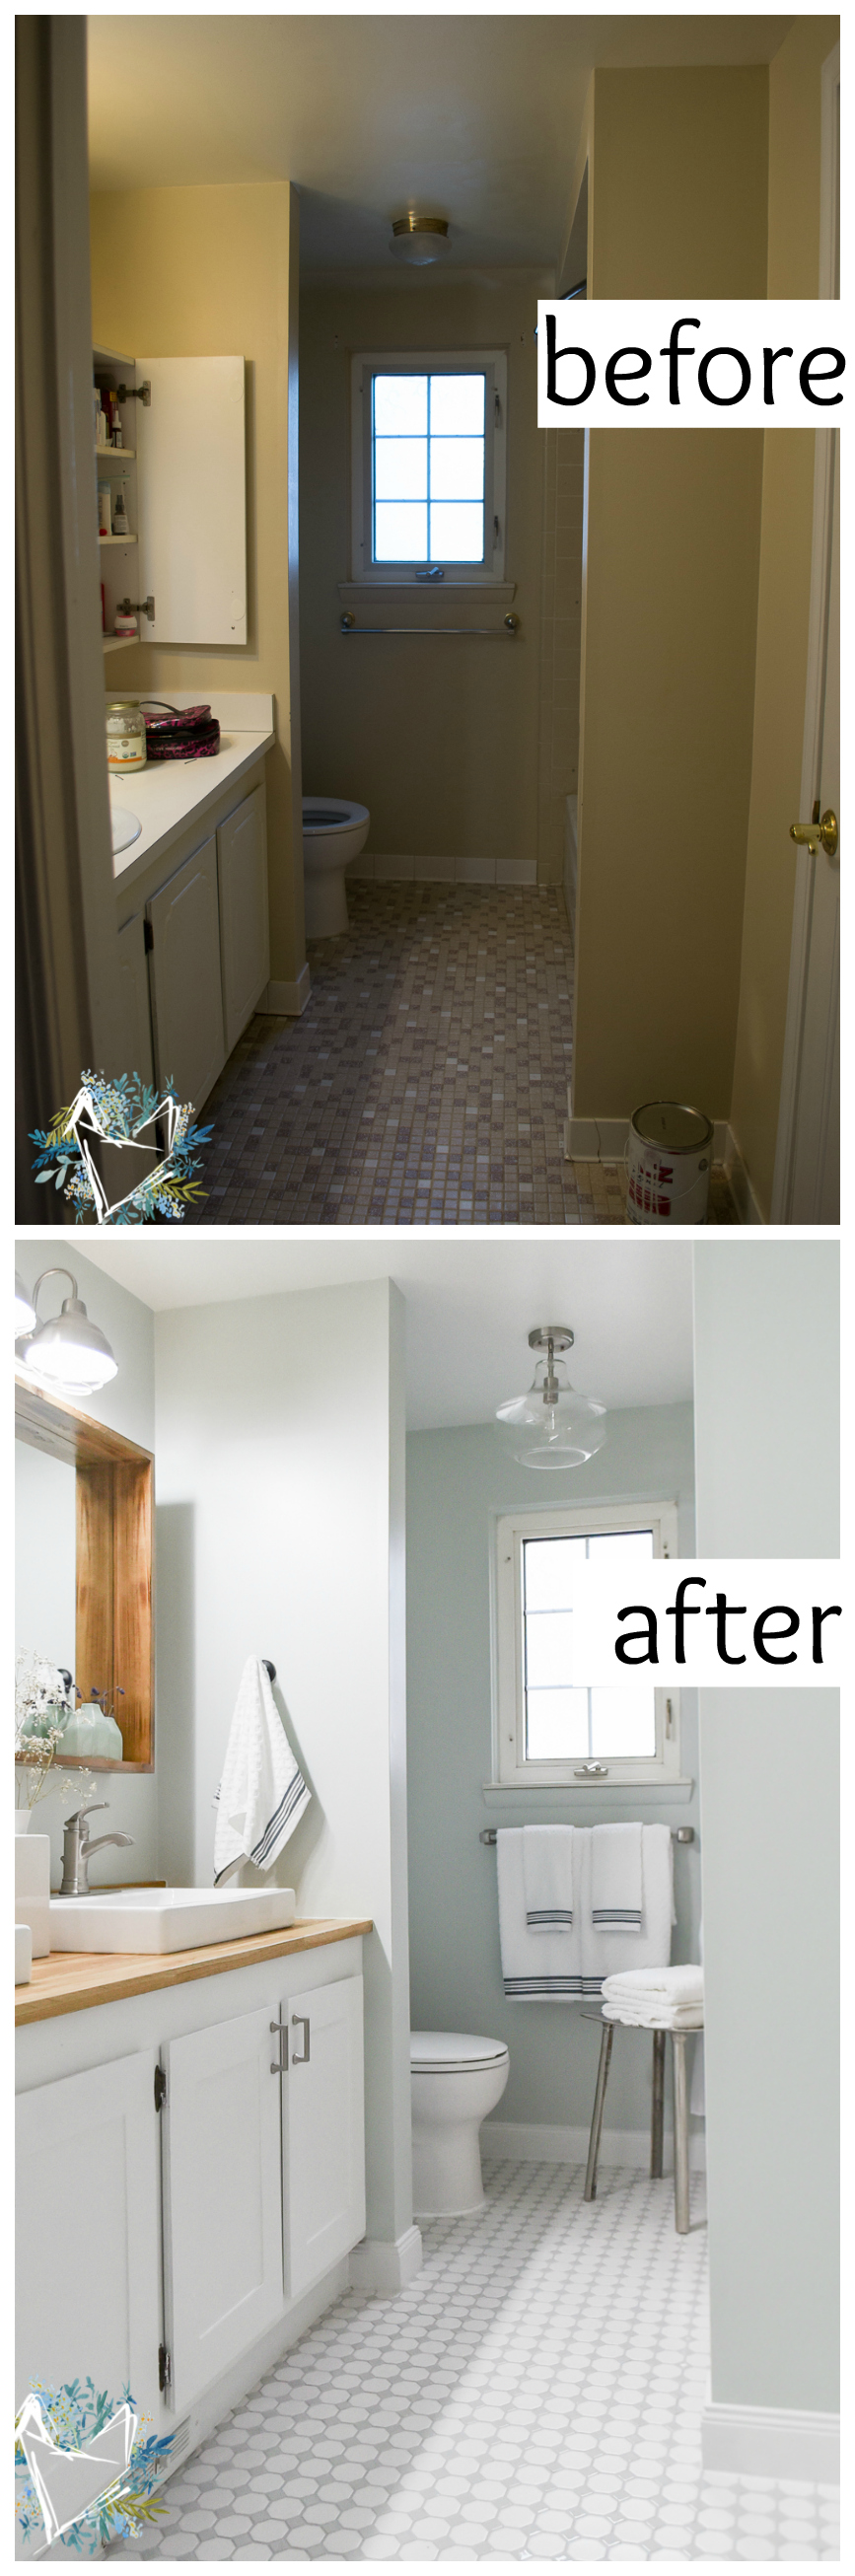 Before And After Modern Farmhouse Bathroom Renovation! You Have To See How  This Bathroom Makeover